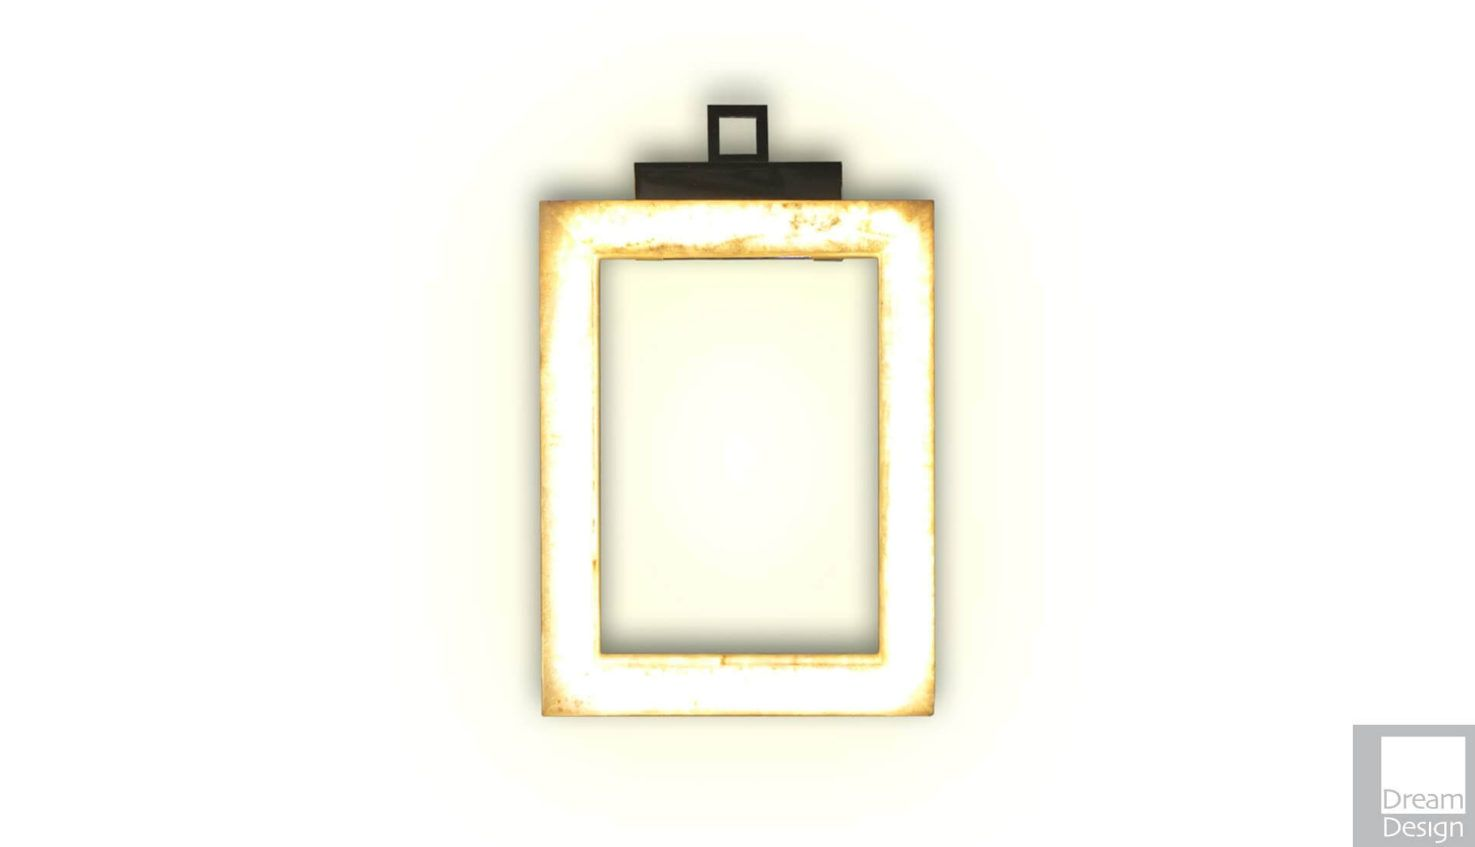 Contardi Uffizi Wall Light